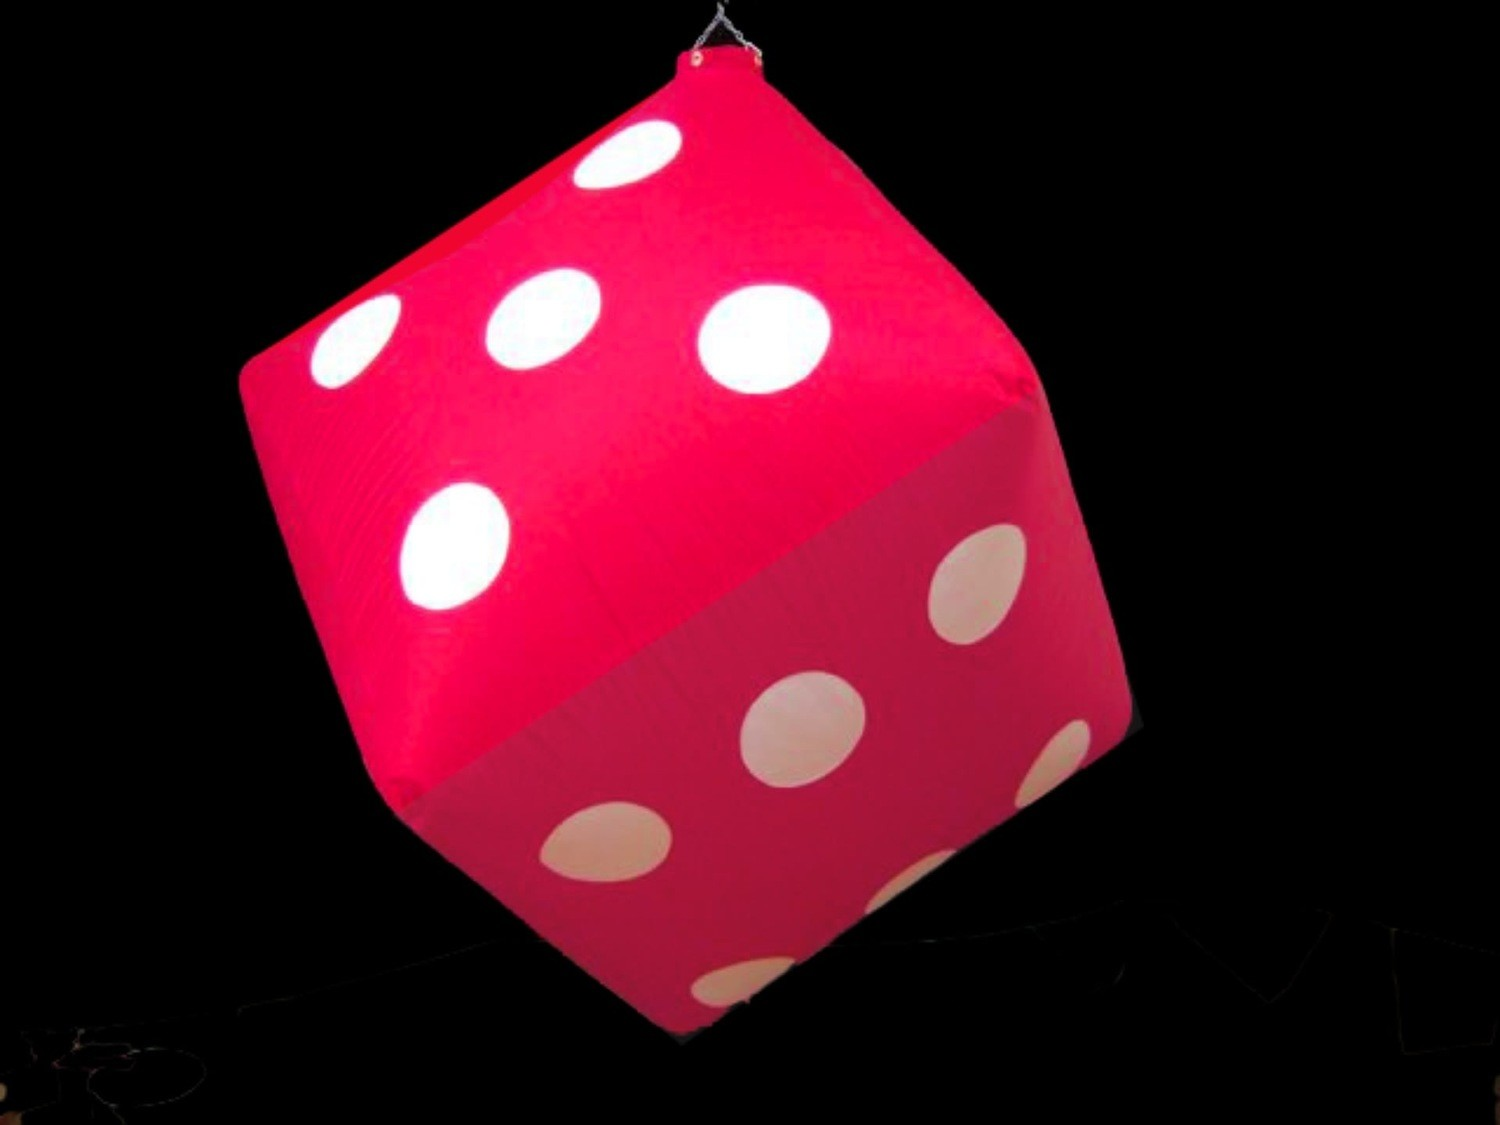 Hanging Inflatable Dice 4ft/122cm x 4ft/122cm